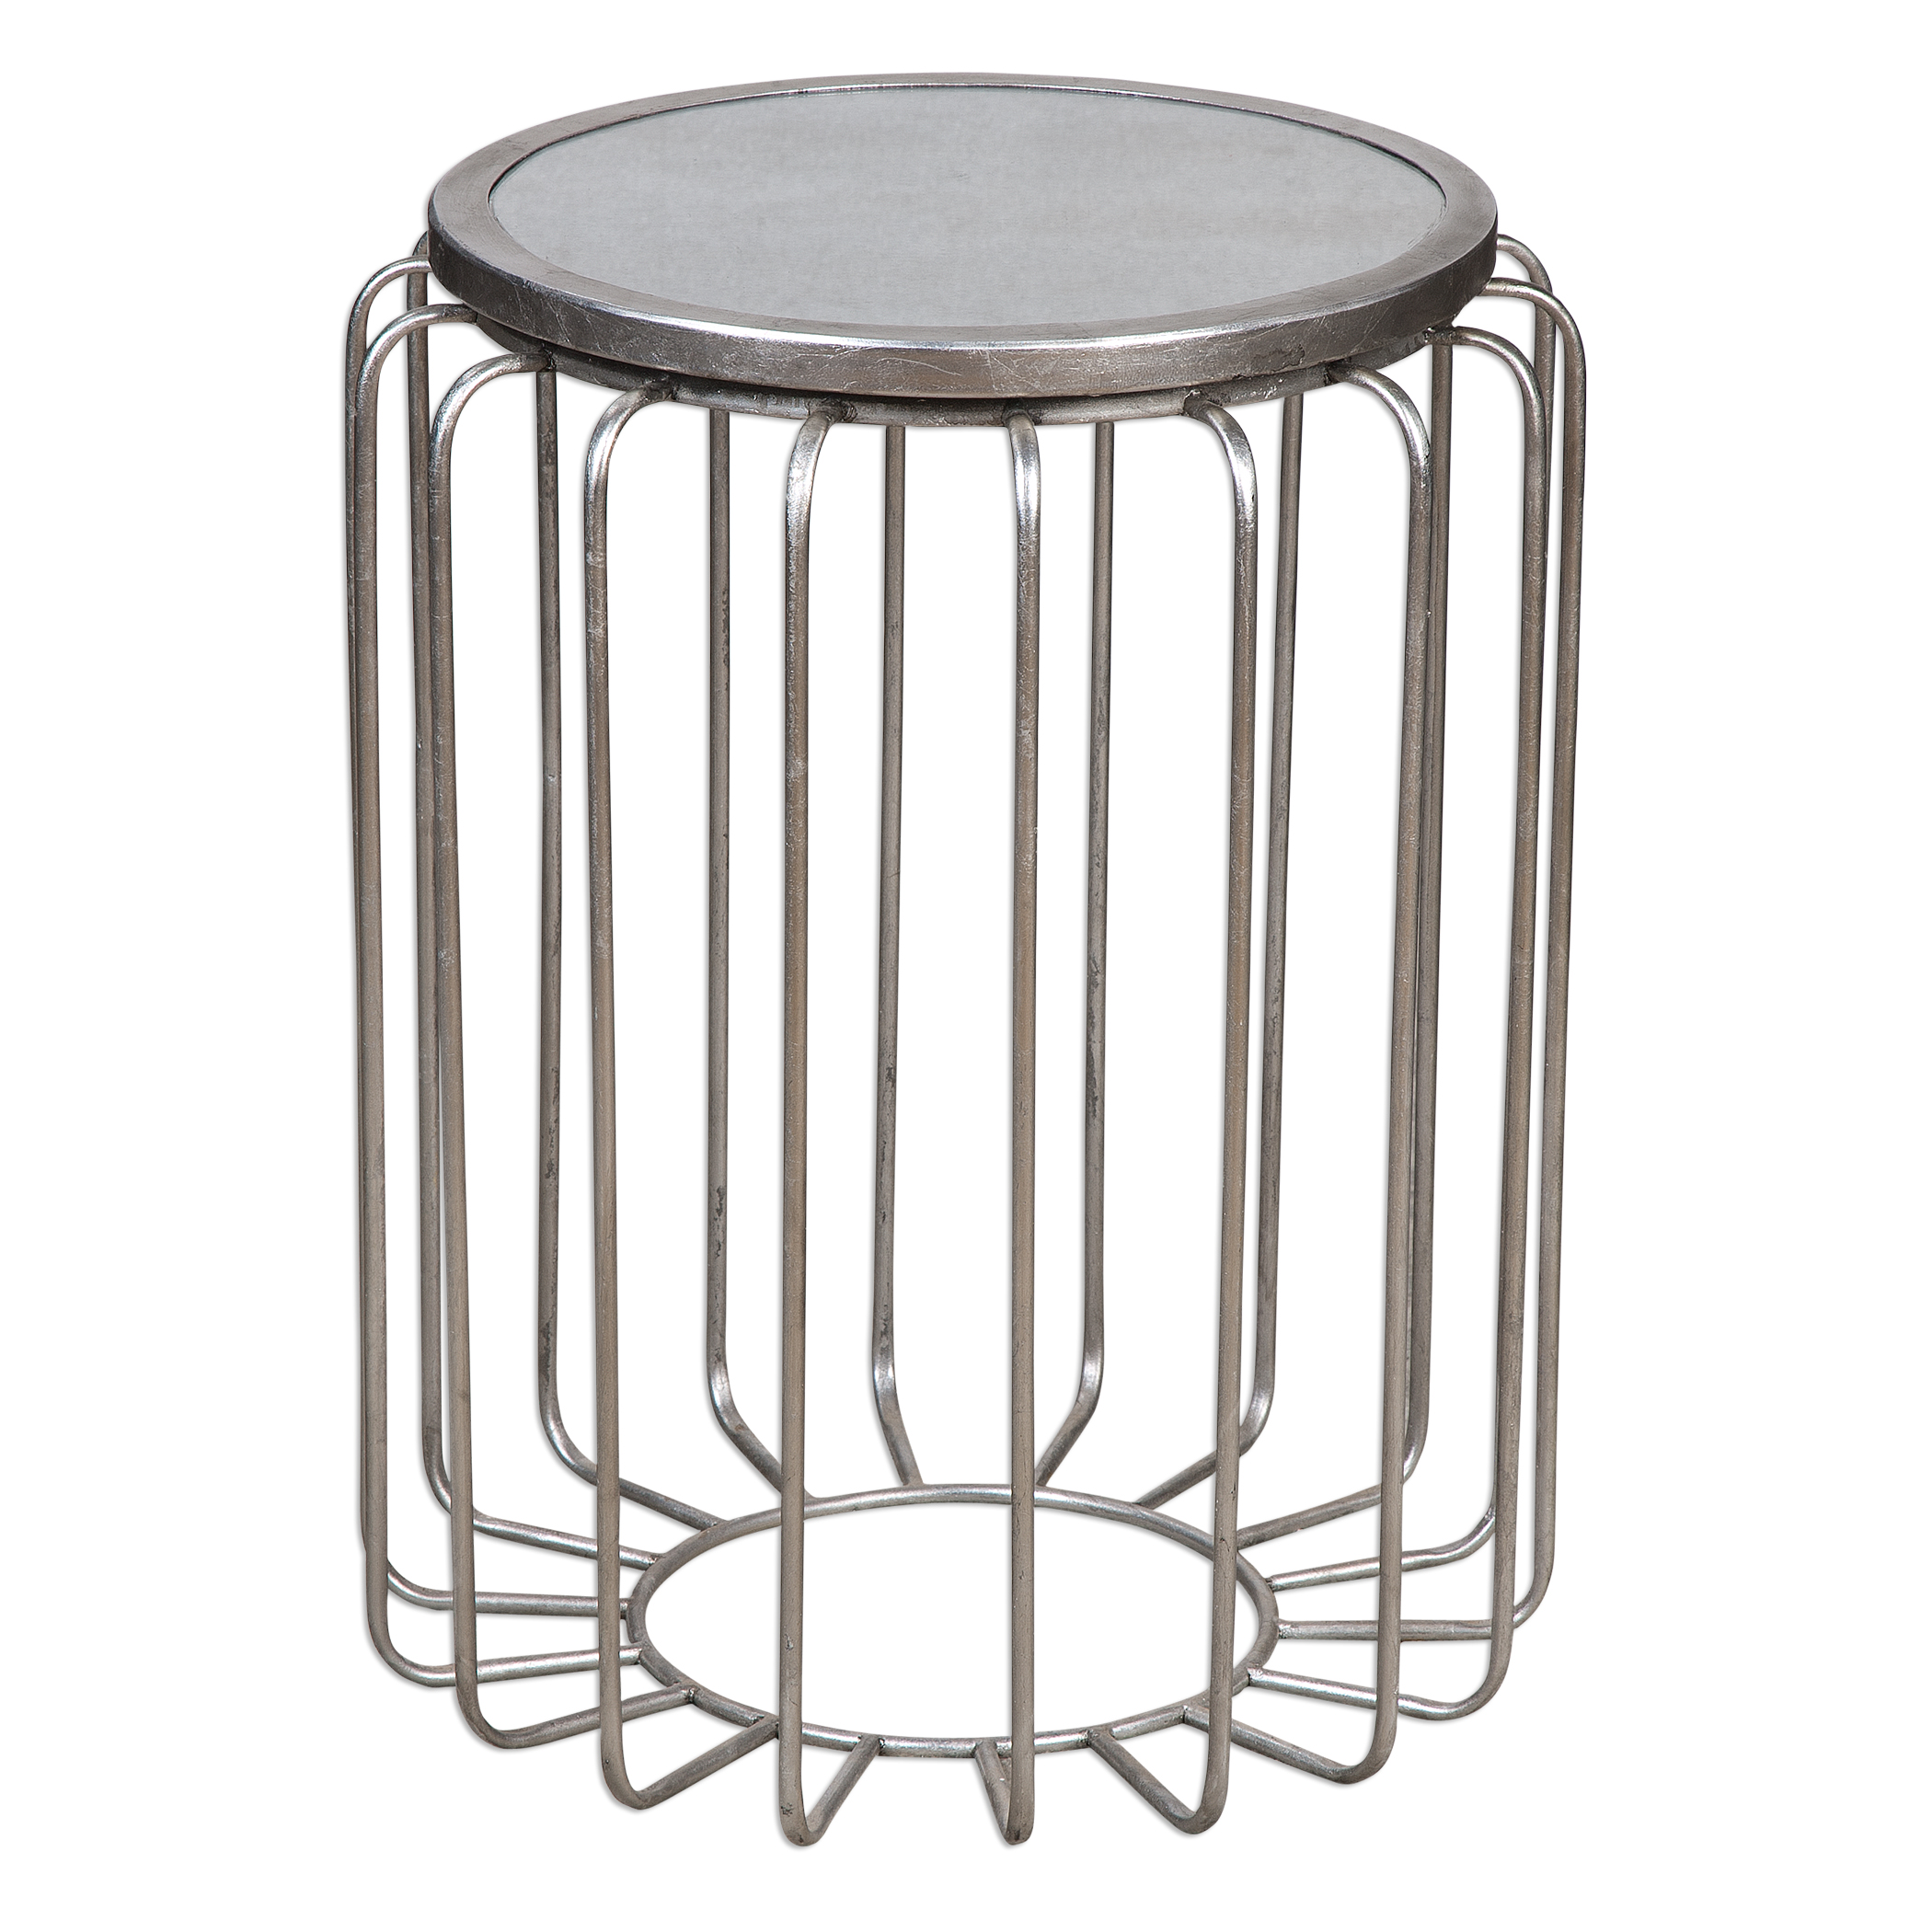 Uttermost Accent Furniture Valerio Antiqued Silver Accent Table - Item Number: 24655